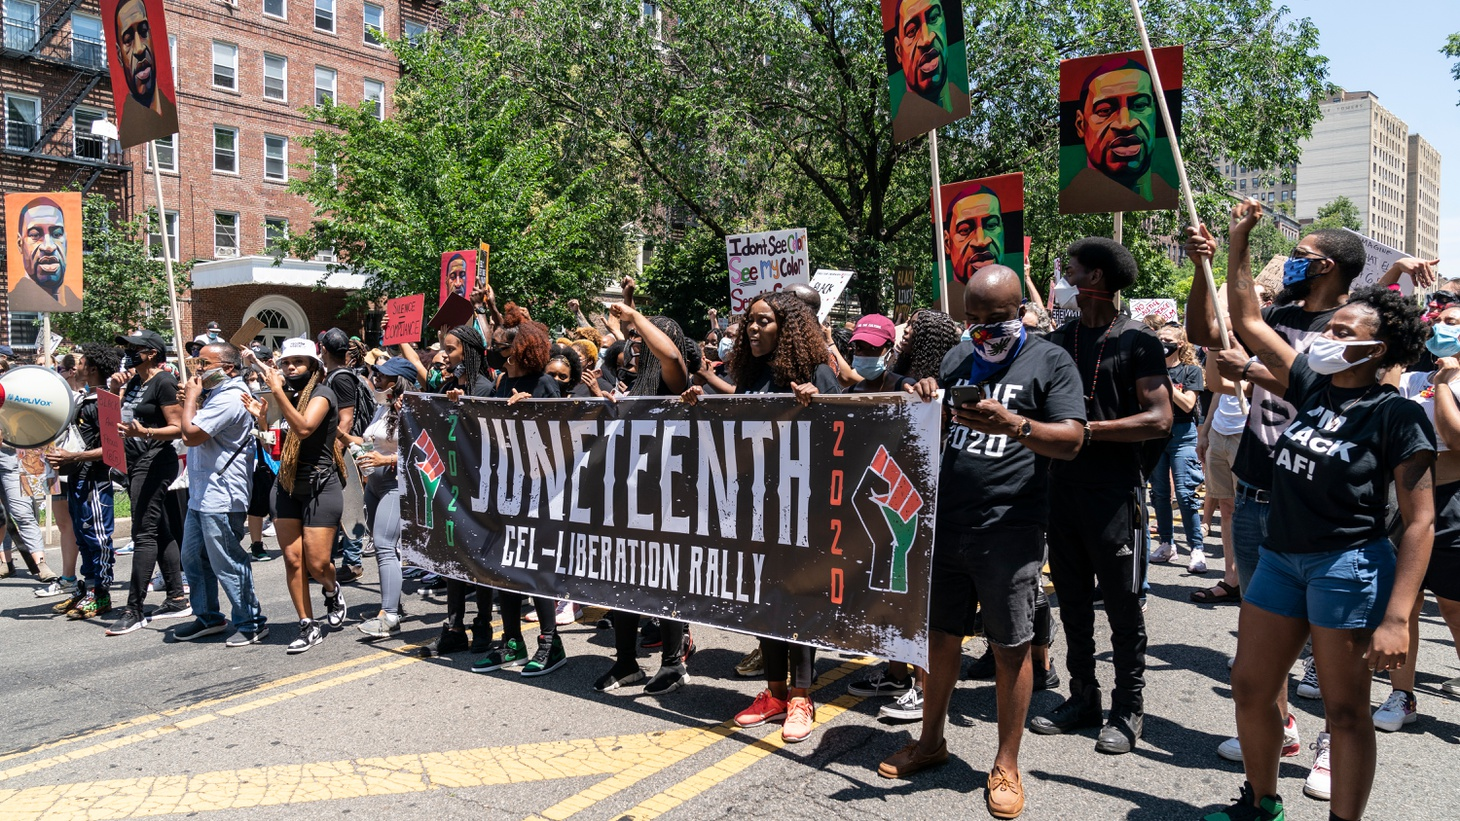 Hundreds of people attend at Juneteenth celebration at Brooklyn Public Library at the Grand Army Plaza, NY.